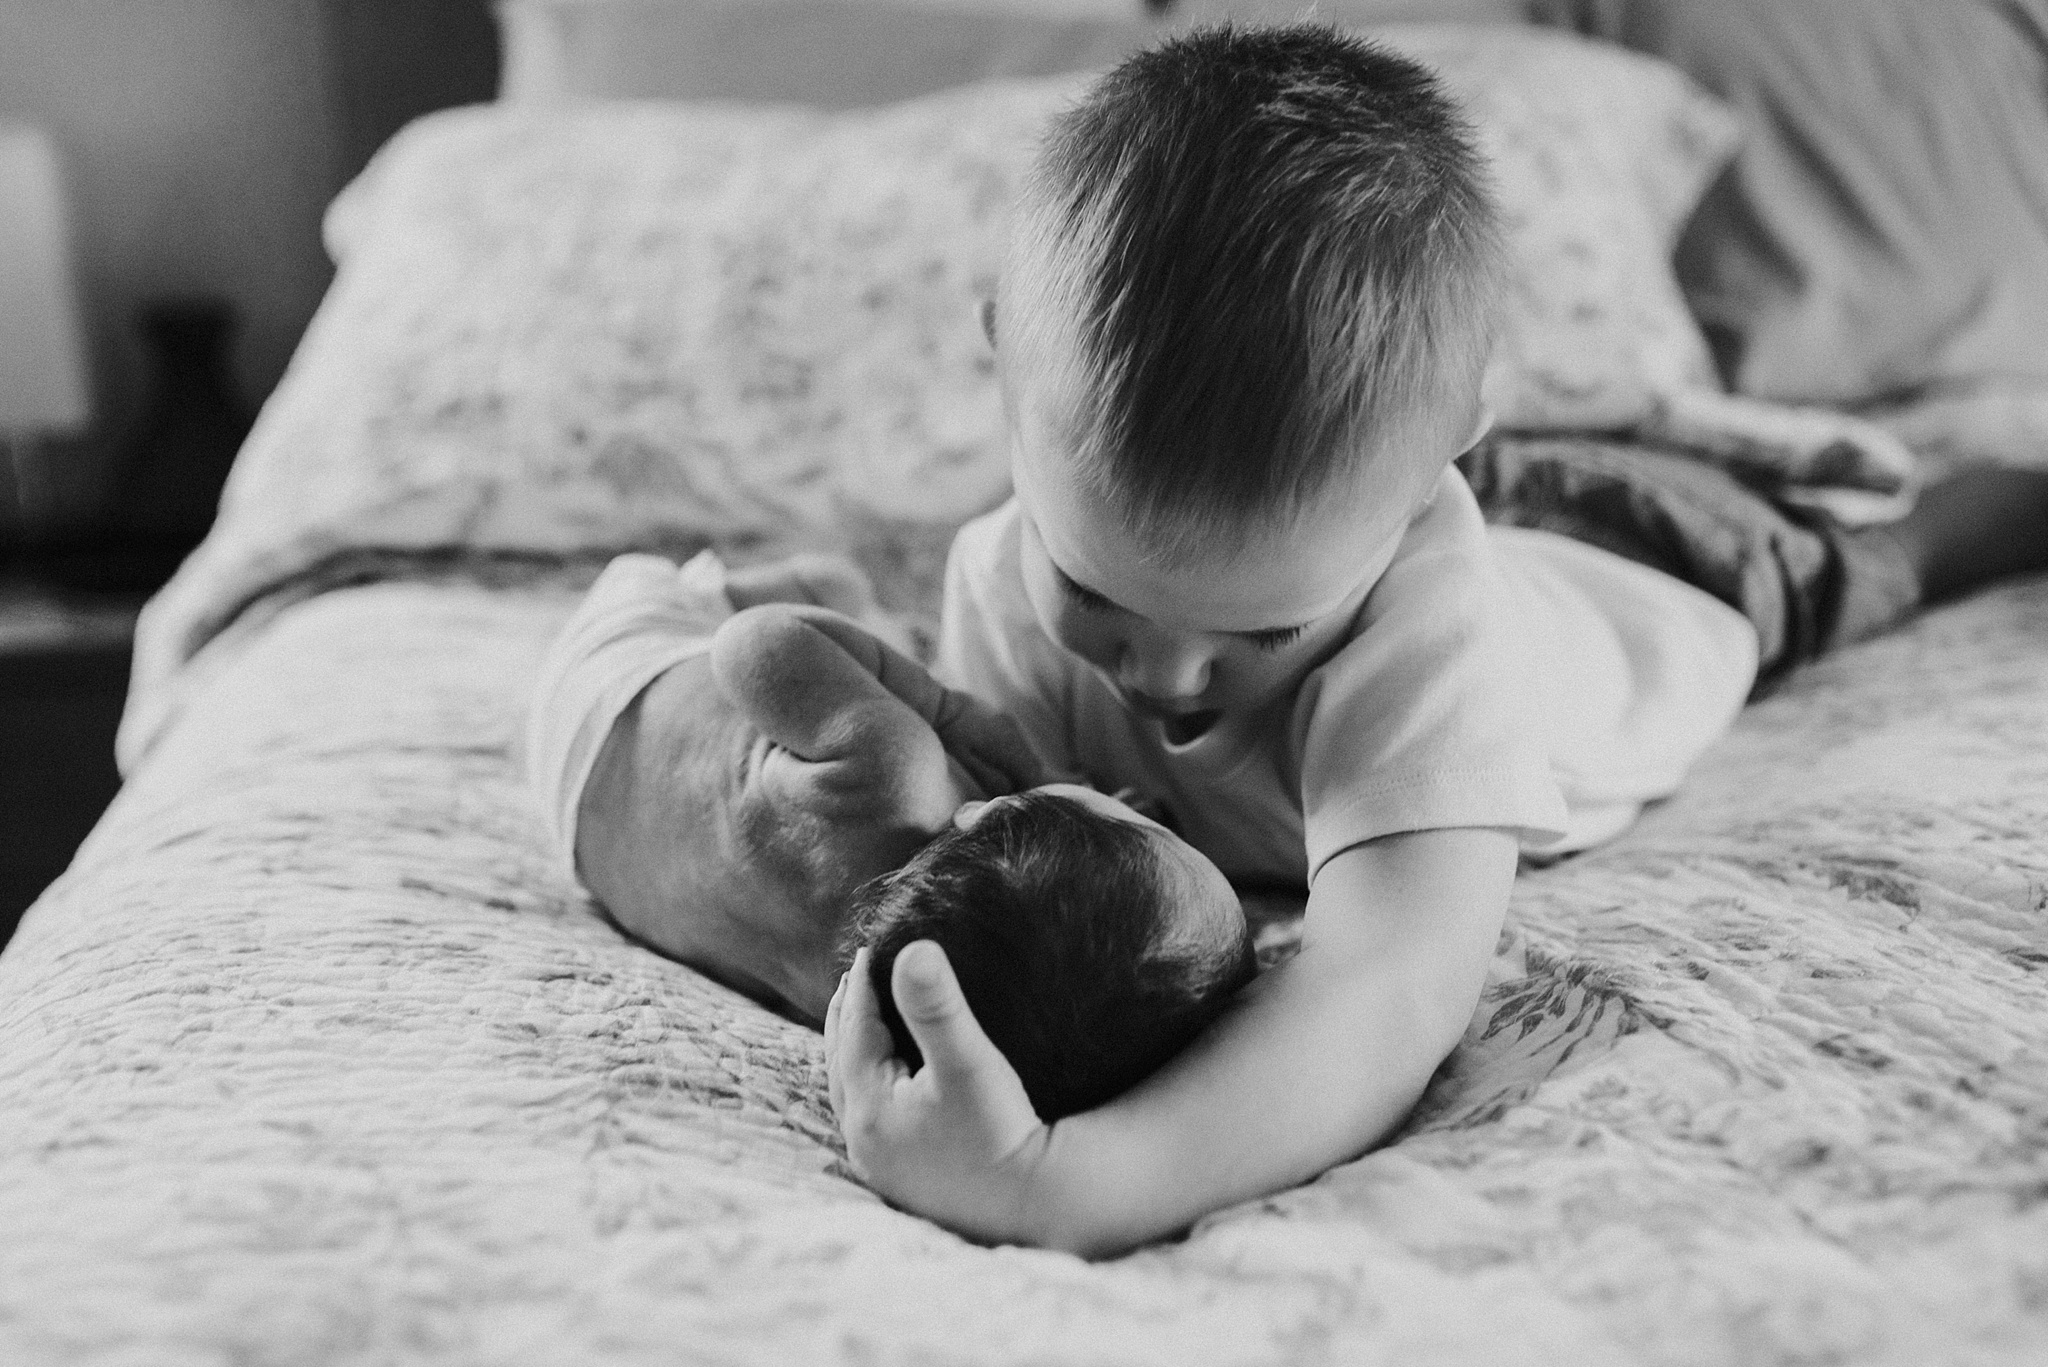 Natural-In-Home-Lifestyle-Newborn-Family-Photographer-Pittsburgh-Rachel-Rossetti-Photography_0054.jpg